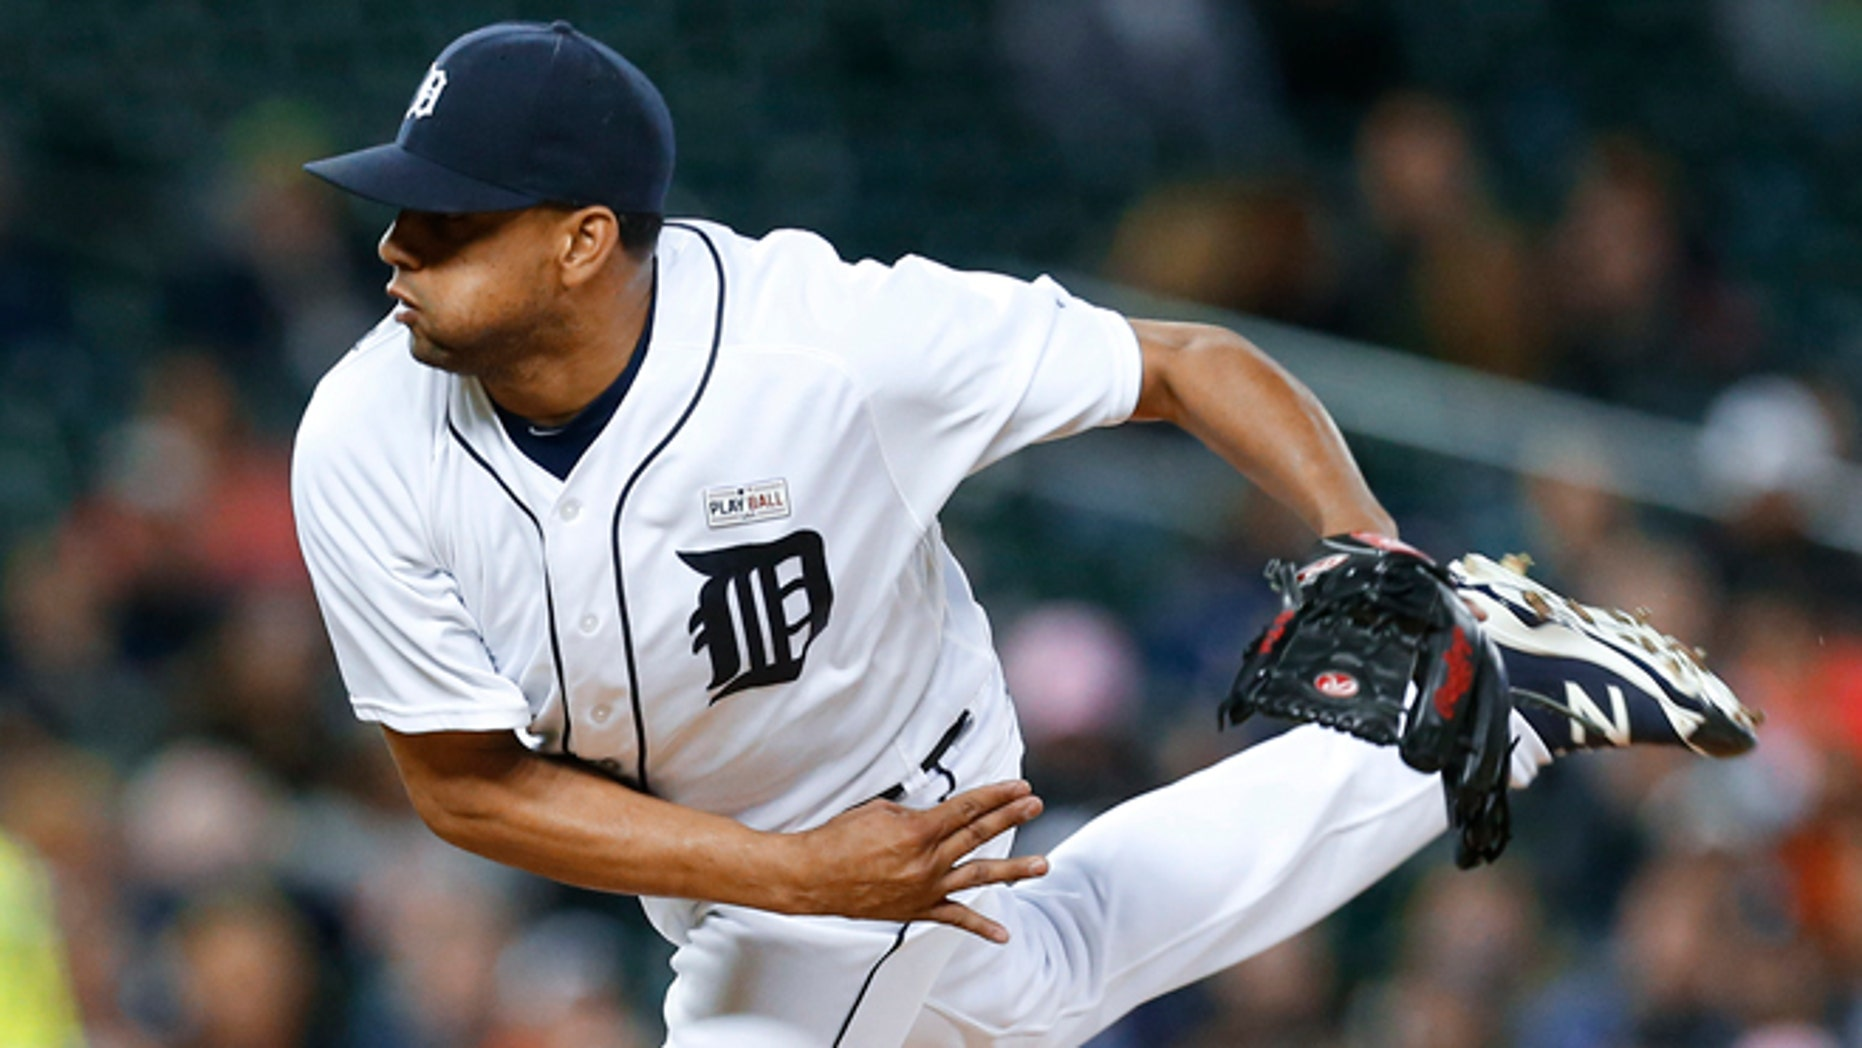 Detroit Tigers relief pitcher Francisco Rodriguez throws against the Minnesota Twins in the ninth inning of a baseball game, Monday, May 16, 2016 in Detroit. Detroit won 10-8. (AP Photo/Paul Sancya)